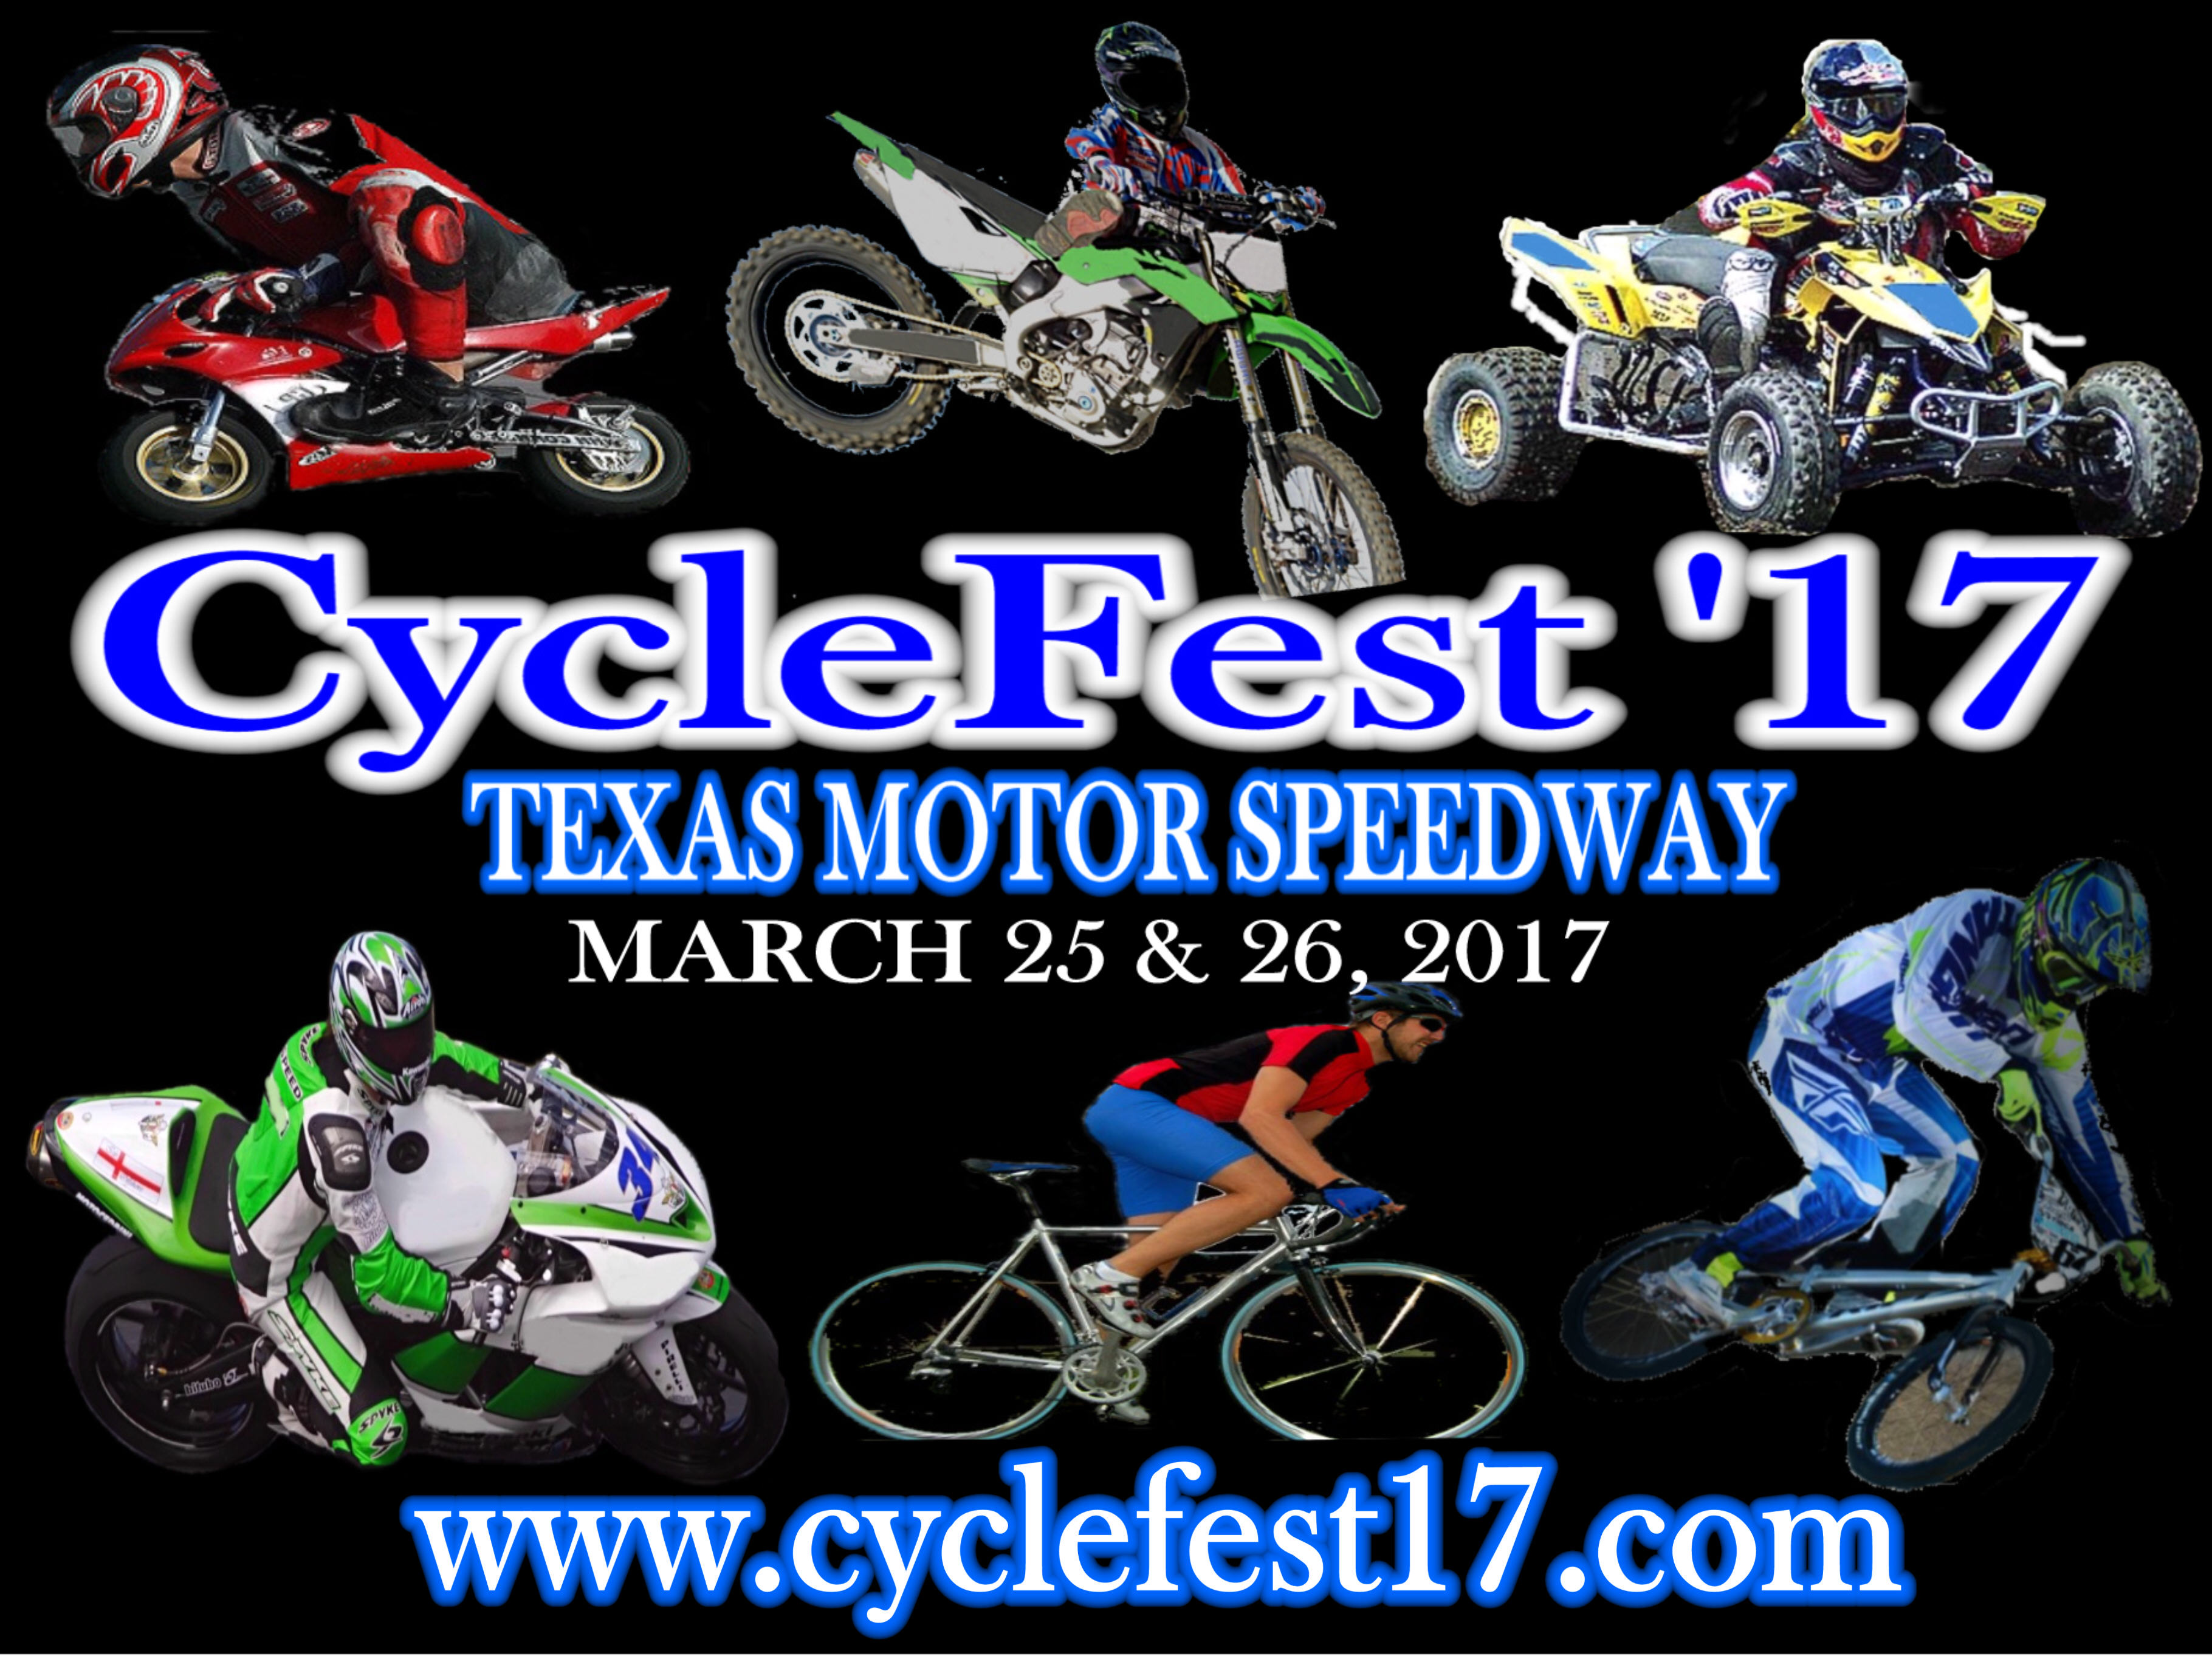 Cyclefest 39 17 texas motor speedway march 2017 events for Texas motor speedway events